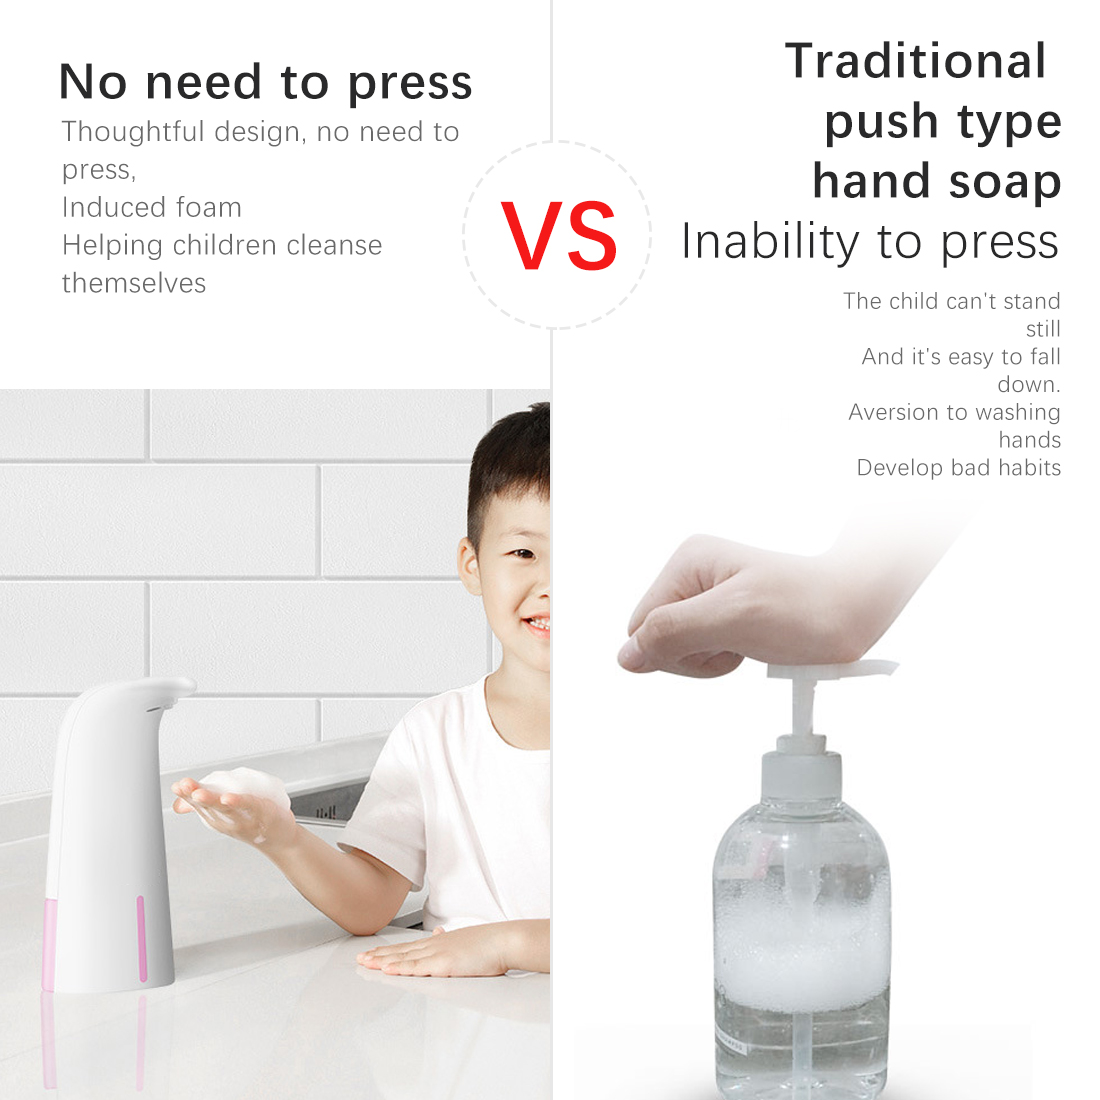 250ML Automatic Induction Soap Dispenser Foam Hotel Hand Sanitizer Wall-mounted Washing Mobile Phone Child Baby Soap Dispenser